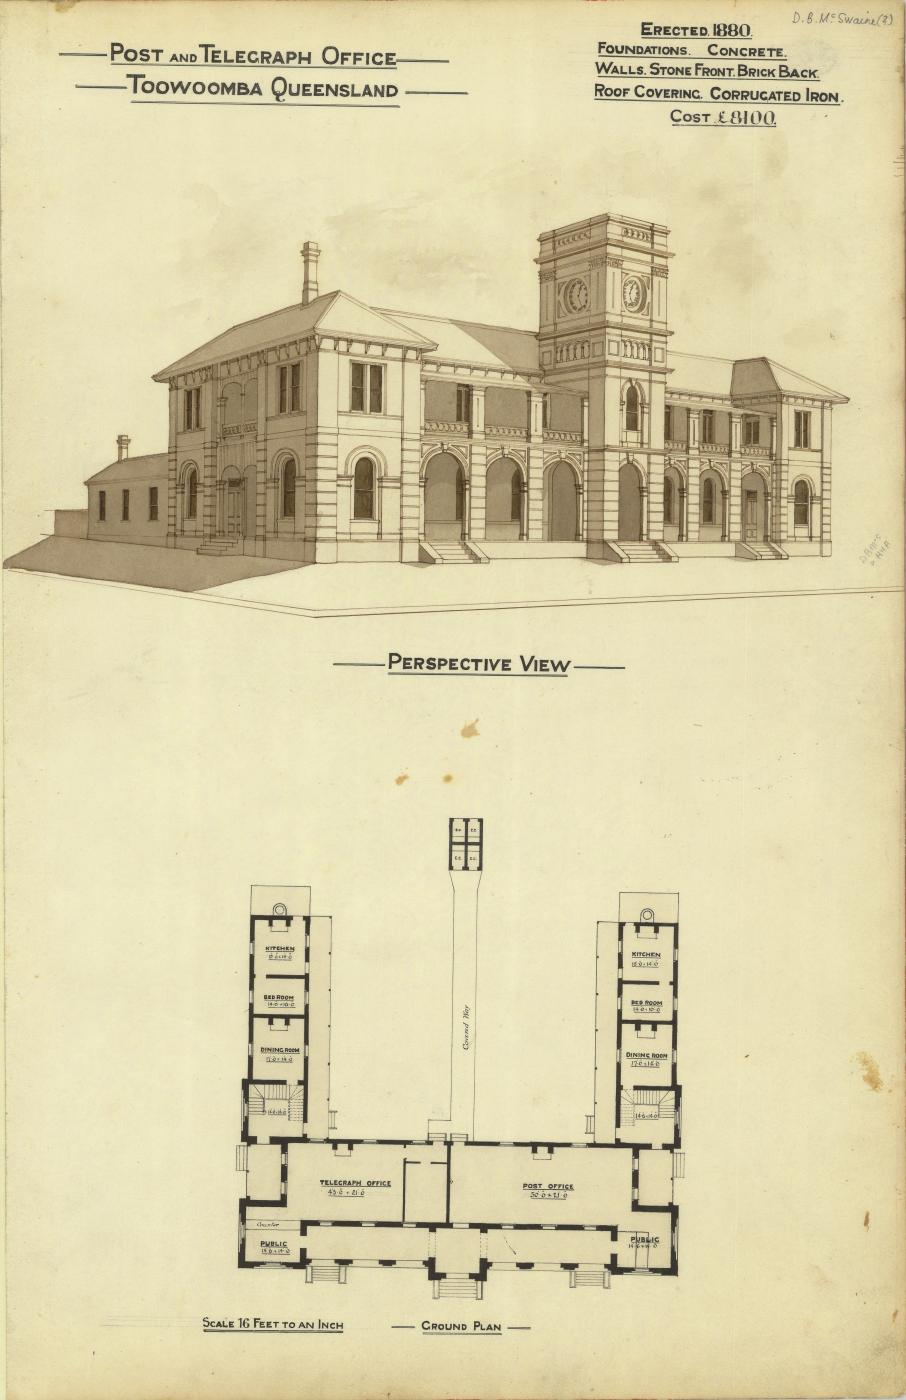 Architectural plan of the Post and Telegraph Office, Toowoomba